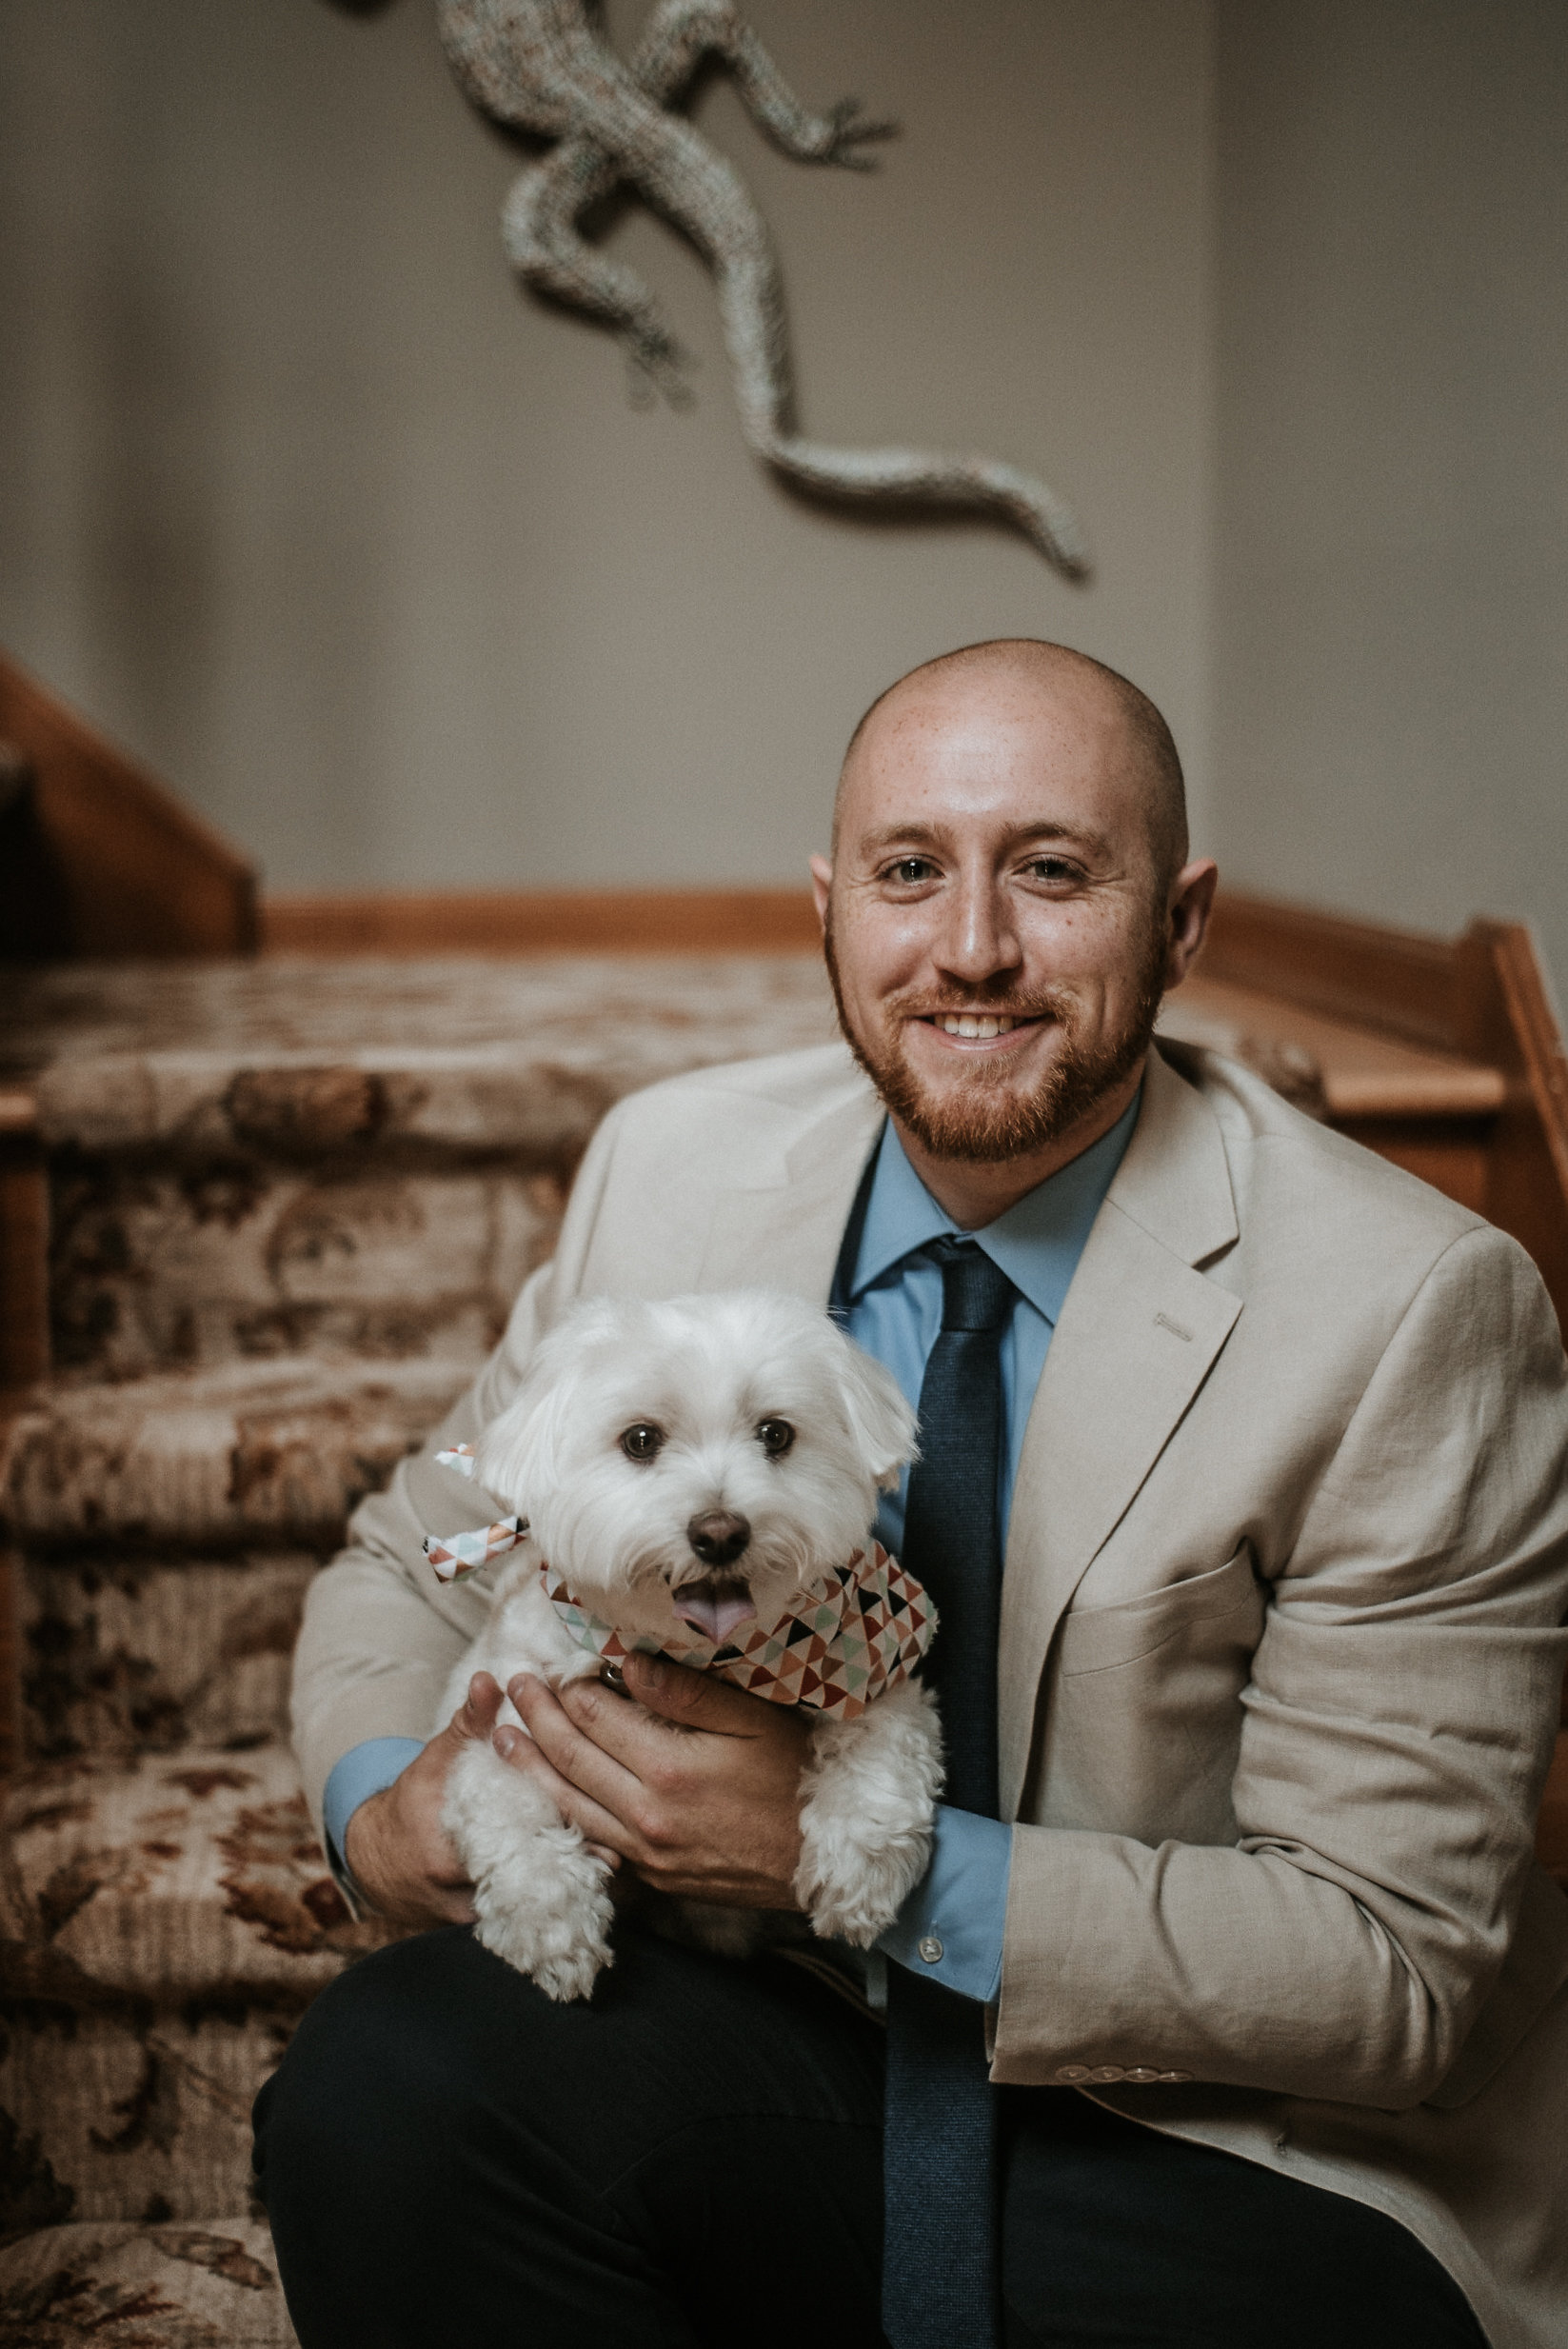 Groom holding dog on stairs